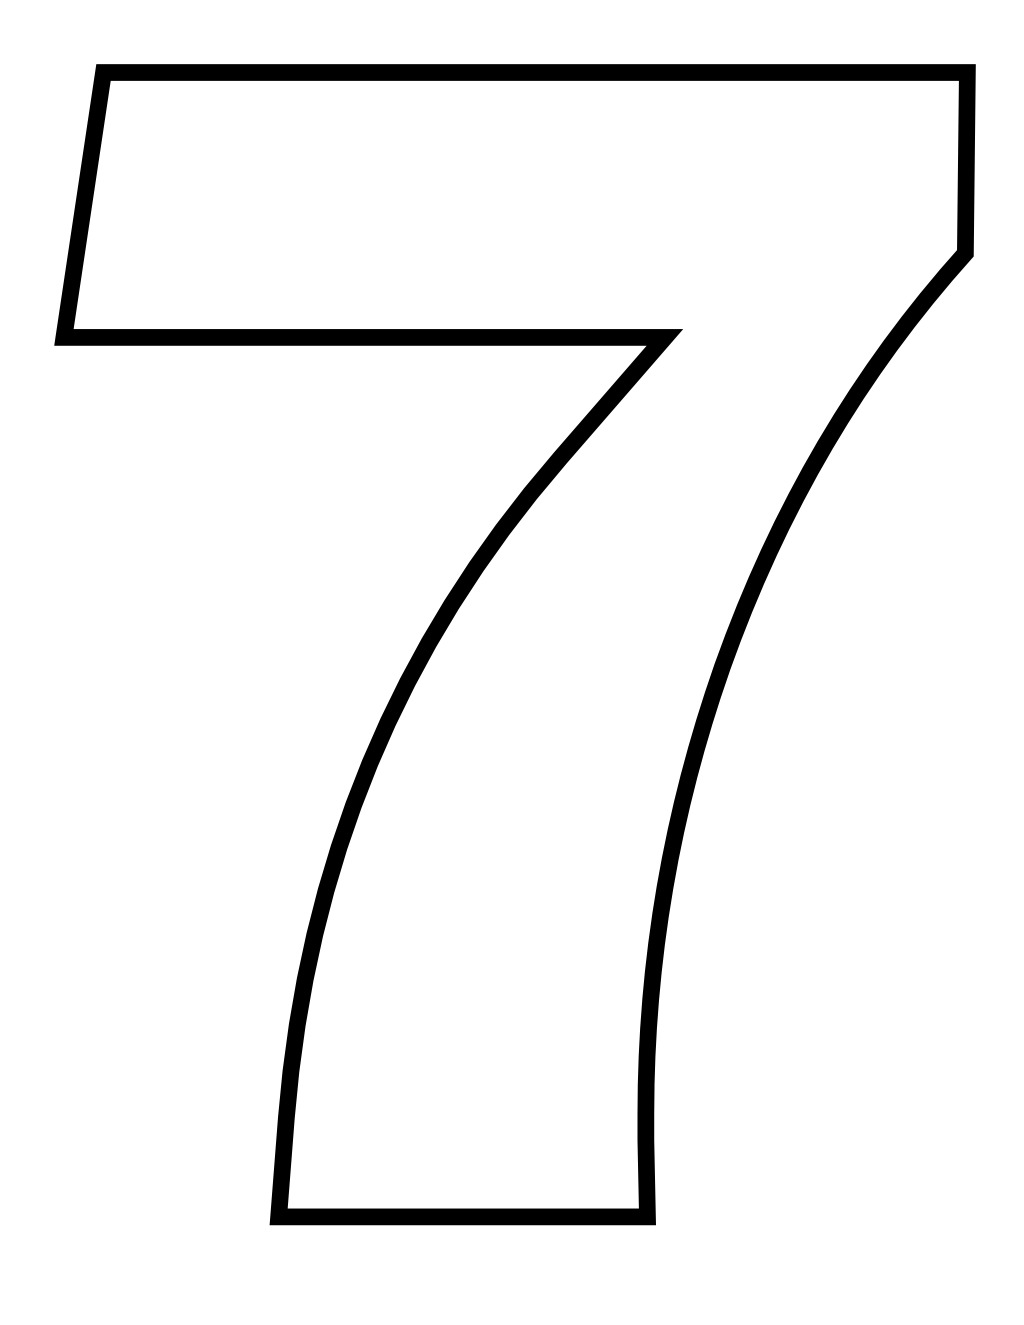 colouring picture of number 7 number 7 coloring page coloring pages for kids 7 of number picture colouring